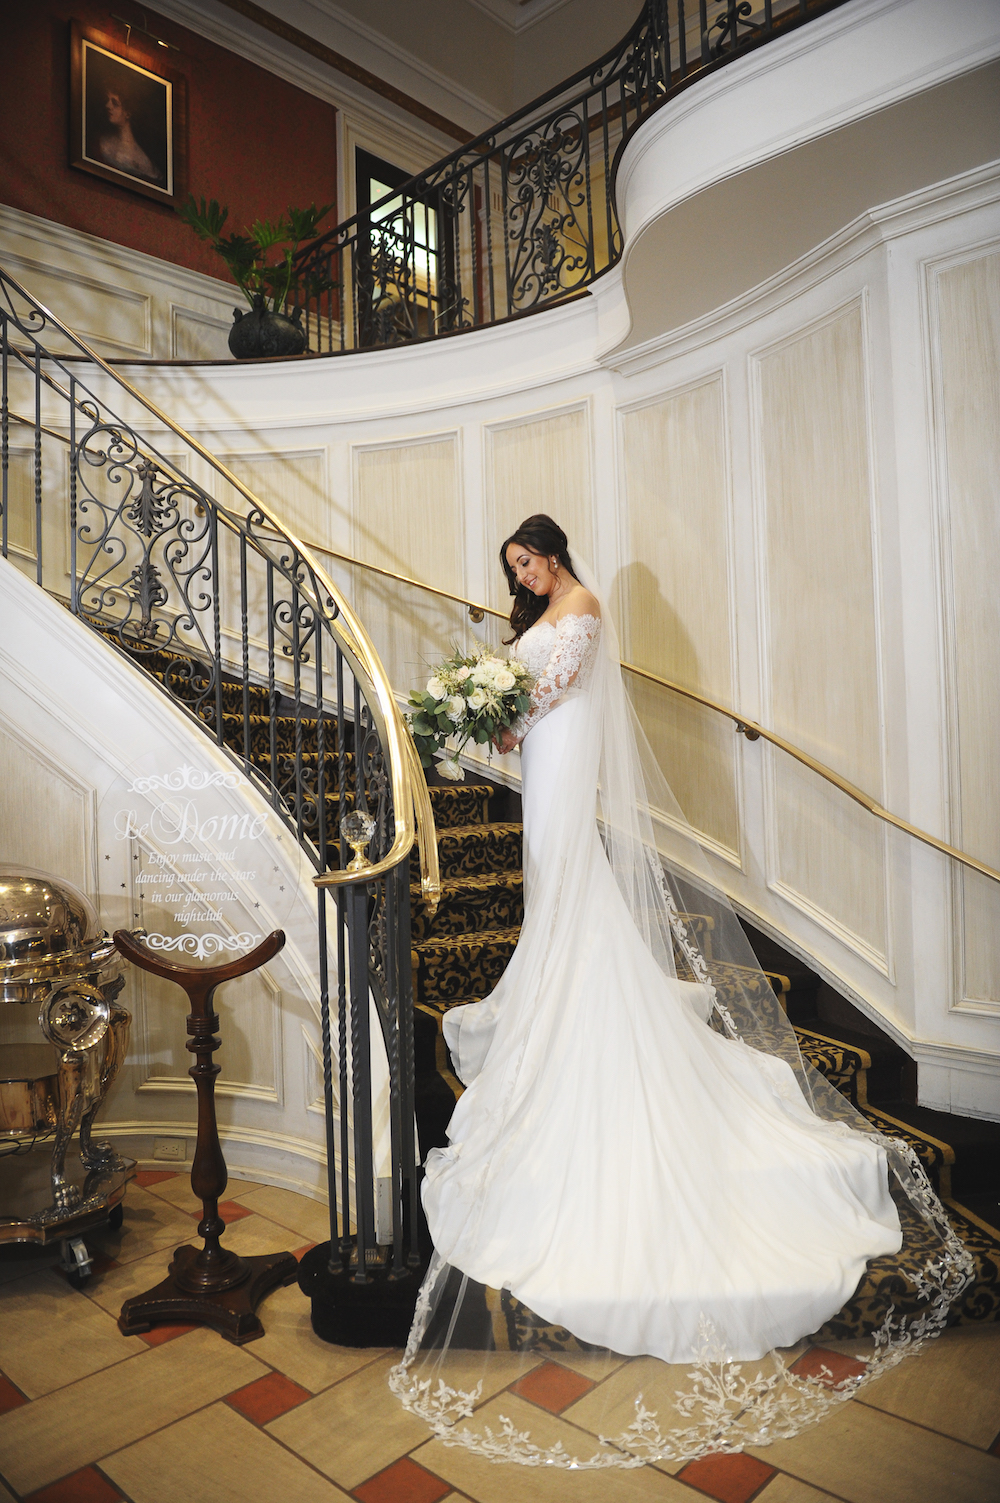 ariann-in-dress-on-stairs-wedding-photography-nj